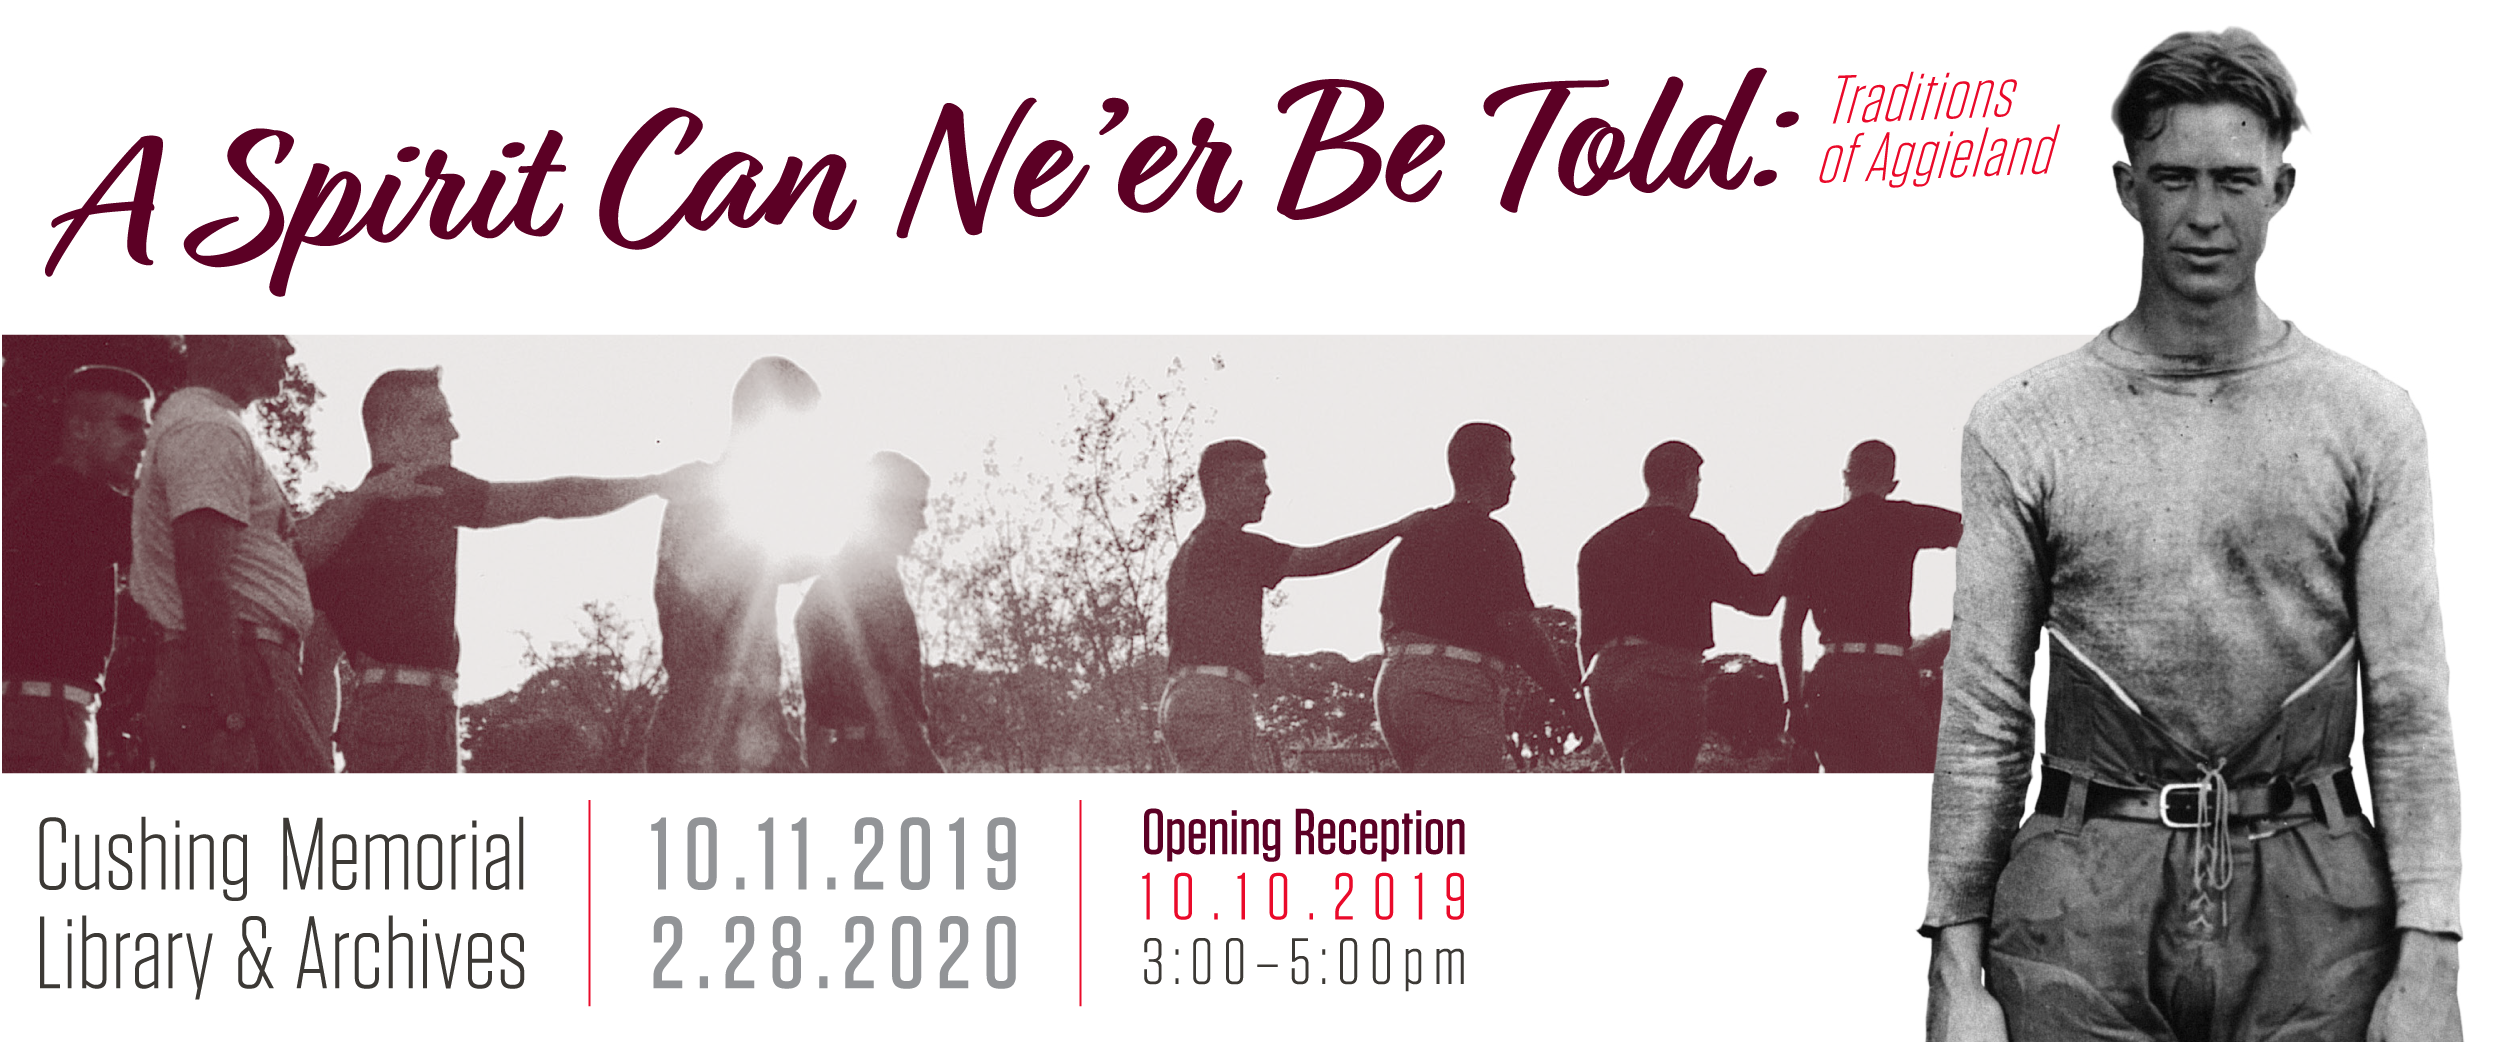 A Spirit Can Ne'er Be Told: Traditions of Aggieland exhibit. Located at Cushing Memorial Library & Archives from October 10, 2019 through February 28, 2020. Opening reception is on October 10 from 3:00 to 5:00 pm.